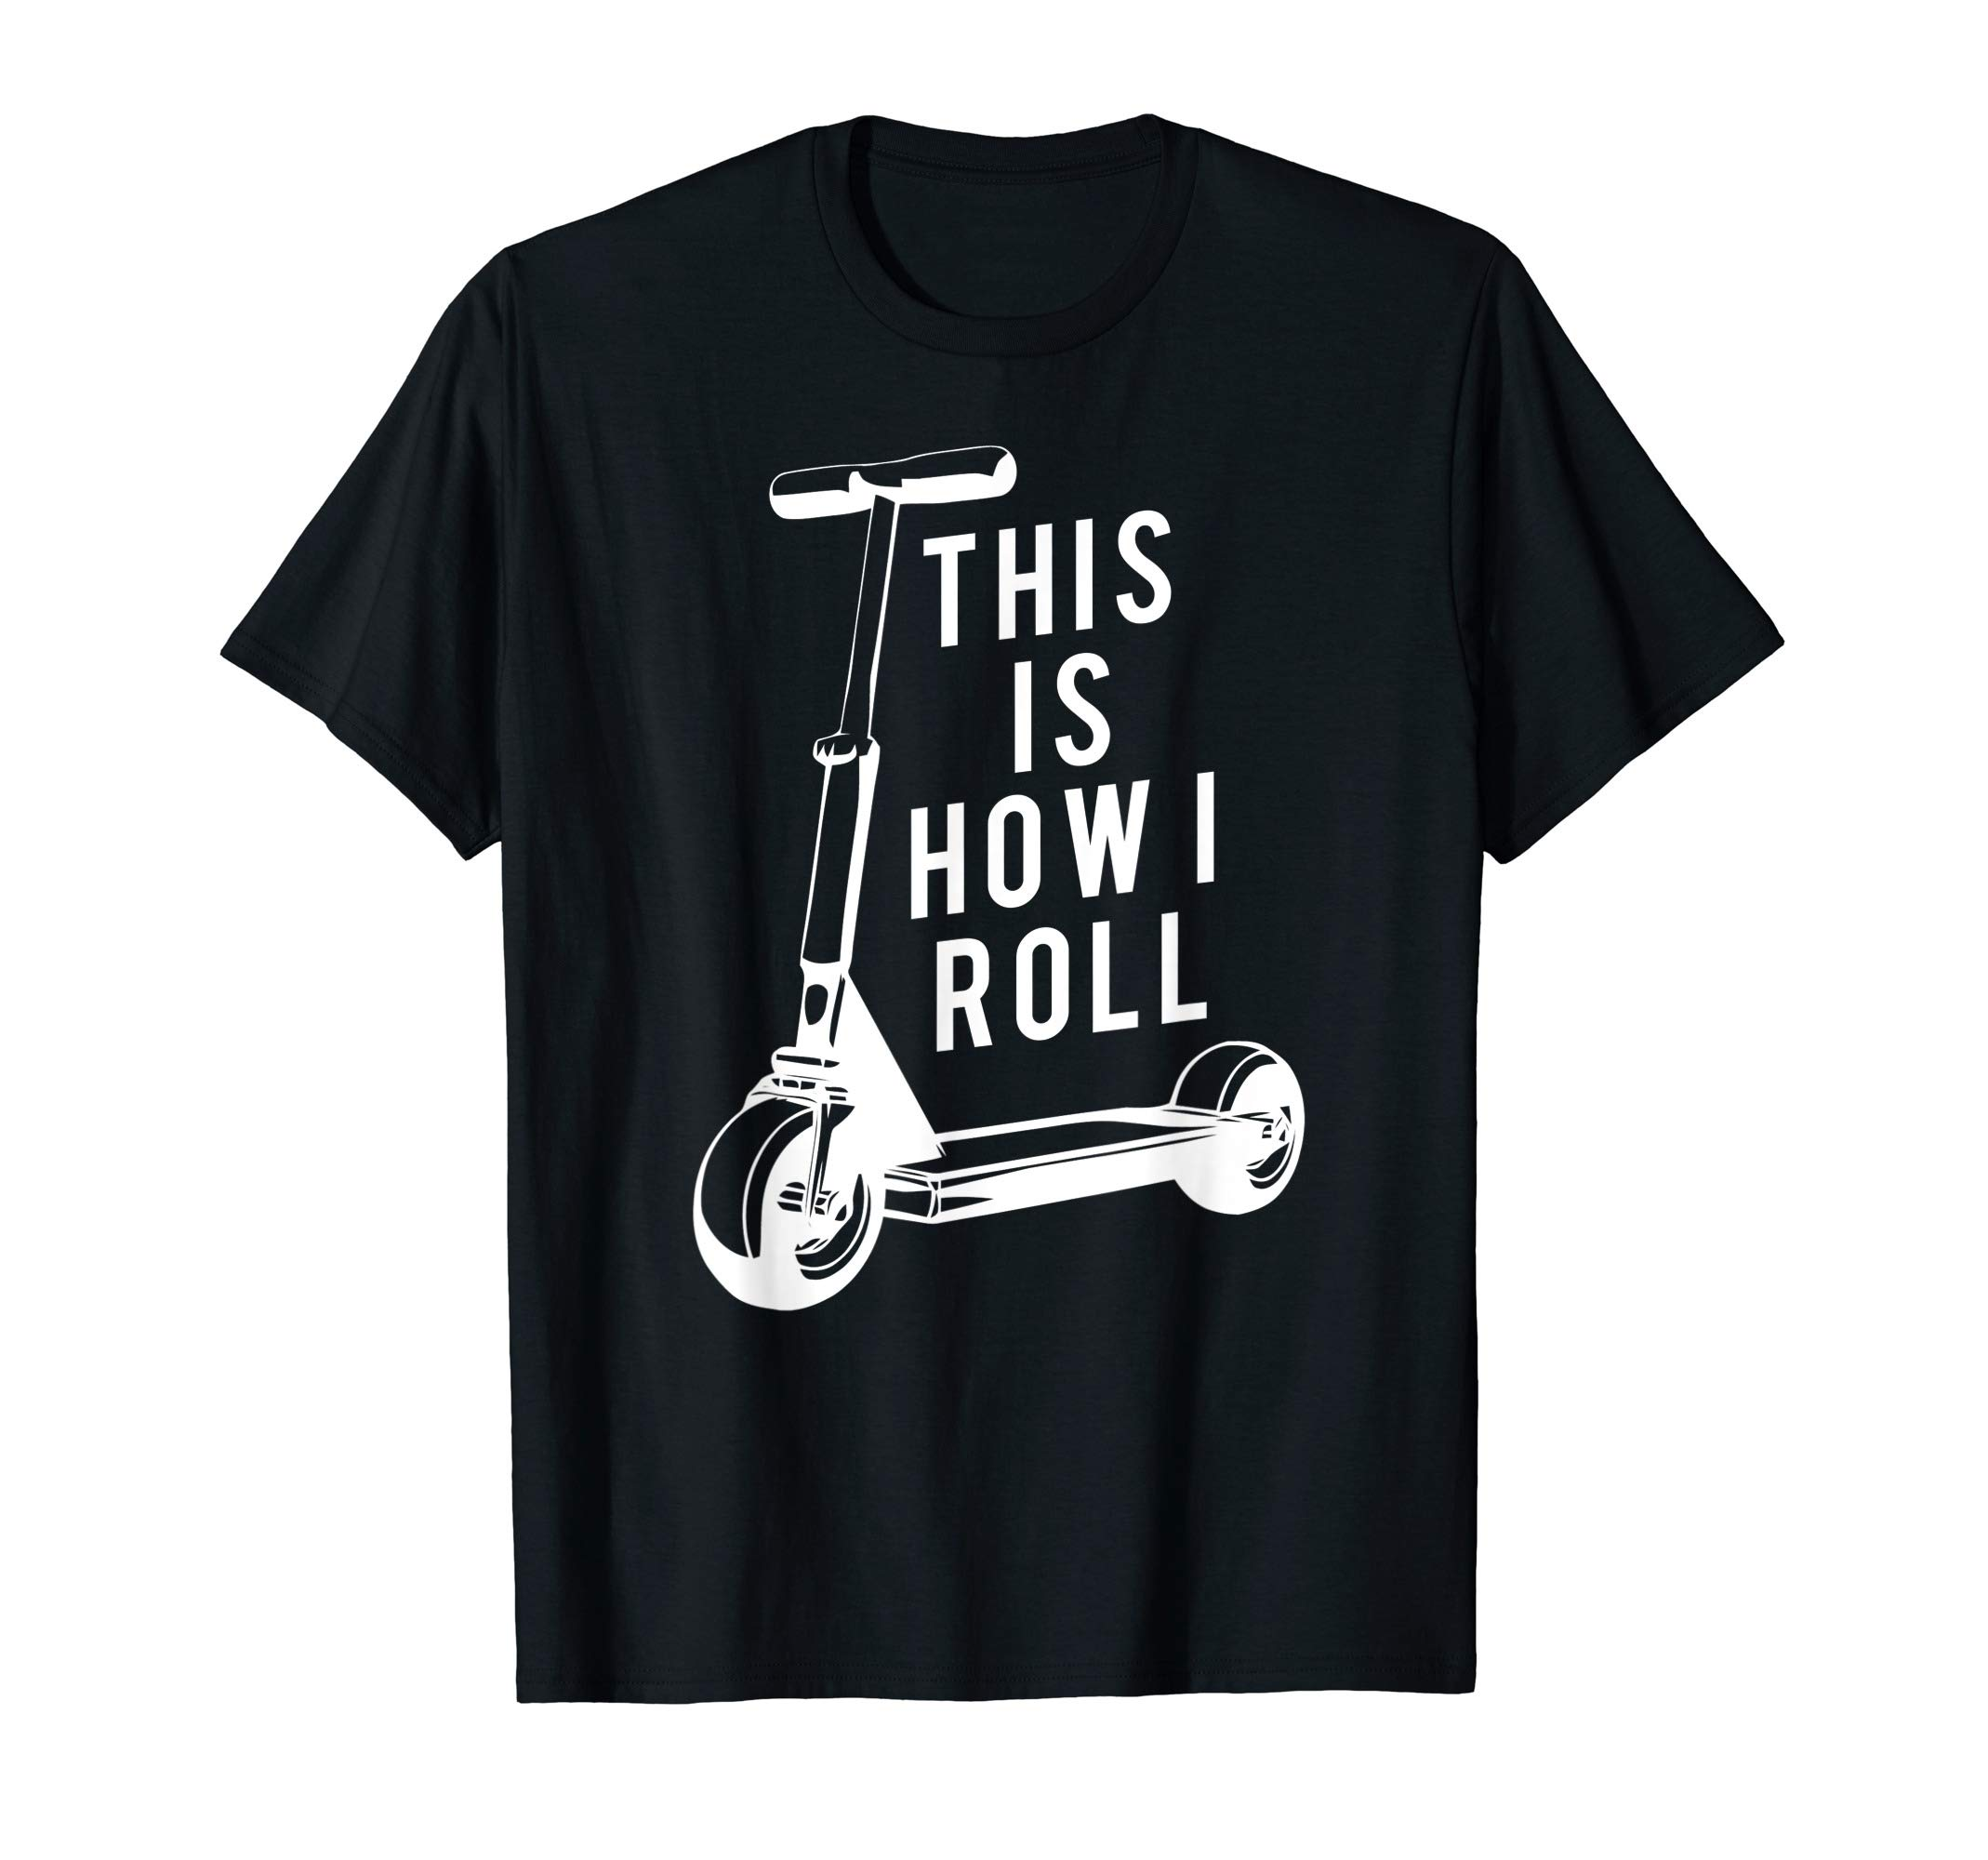 Fun Scooter T-Shirt, This Is How I Roll Push Scooter Tee by Fun Scooter Tee Apparel